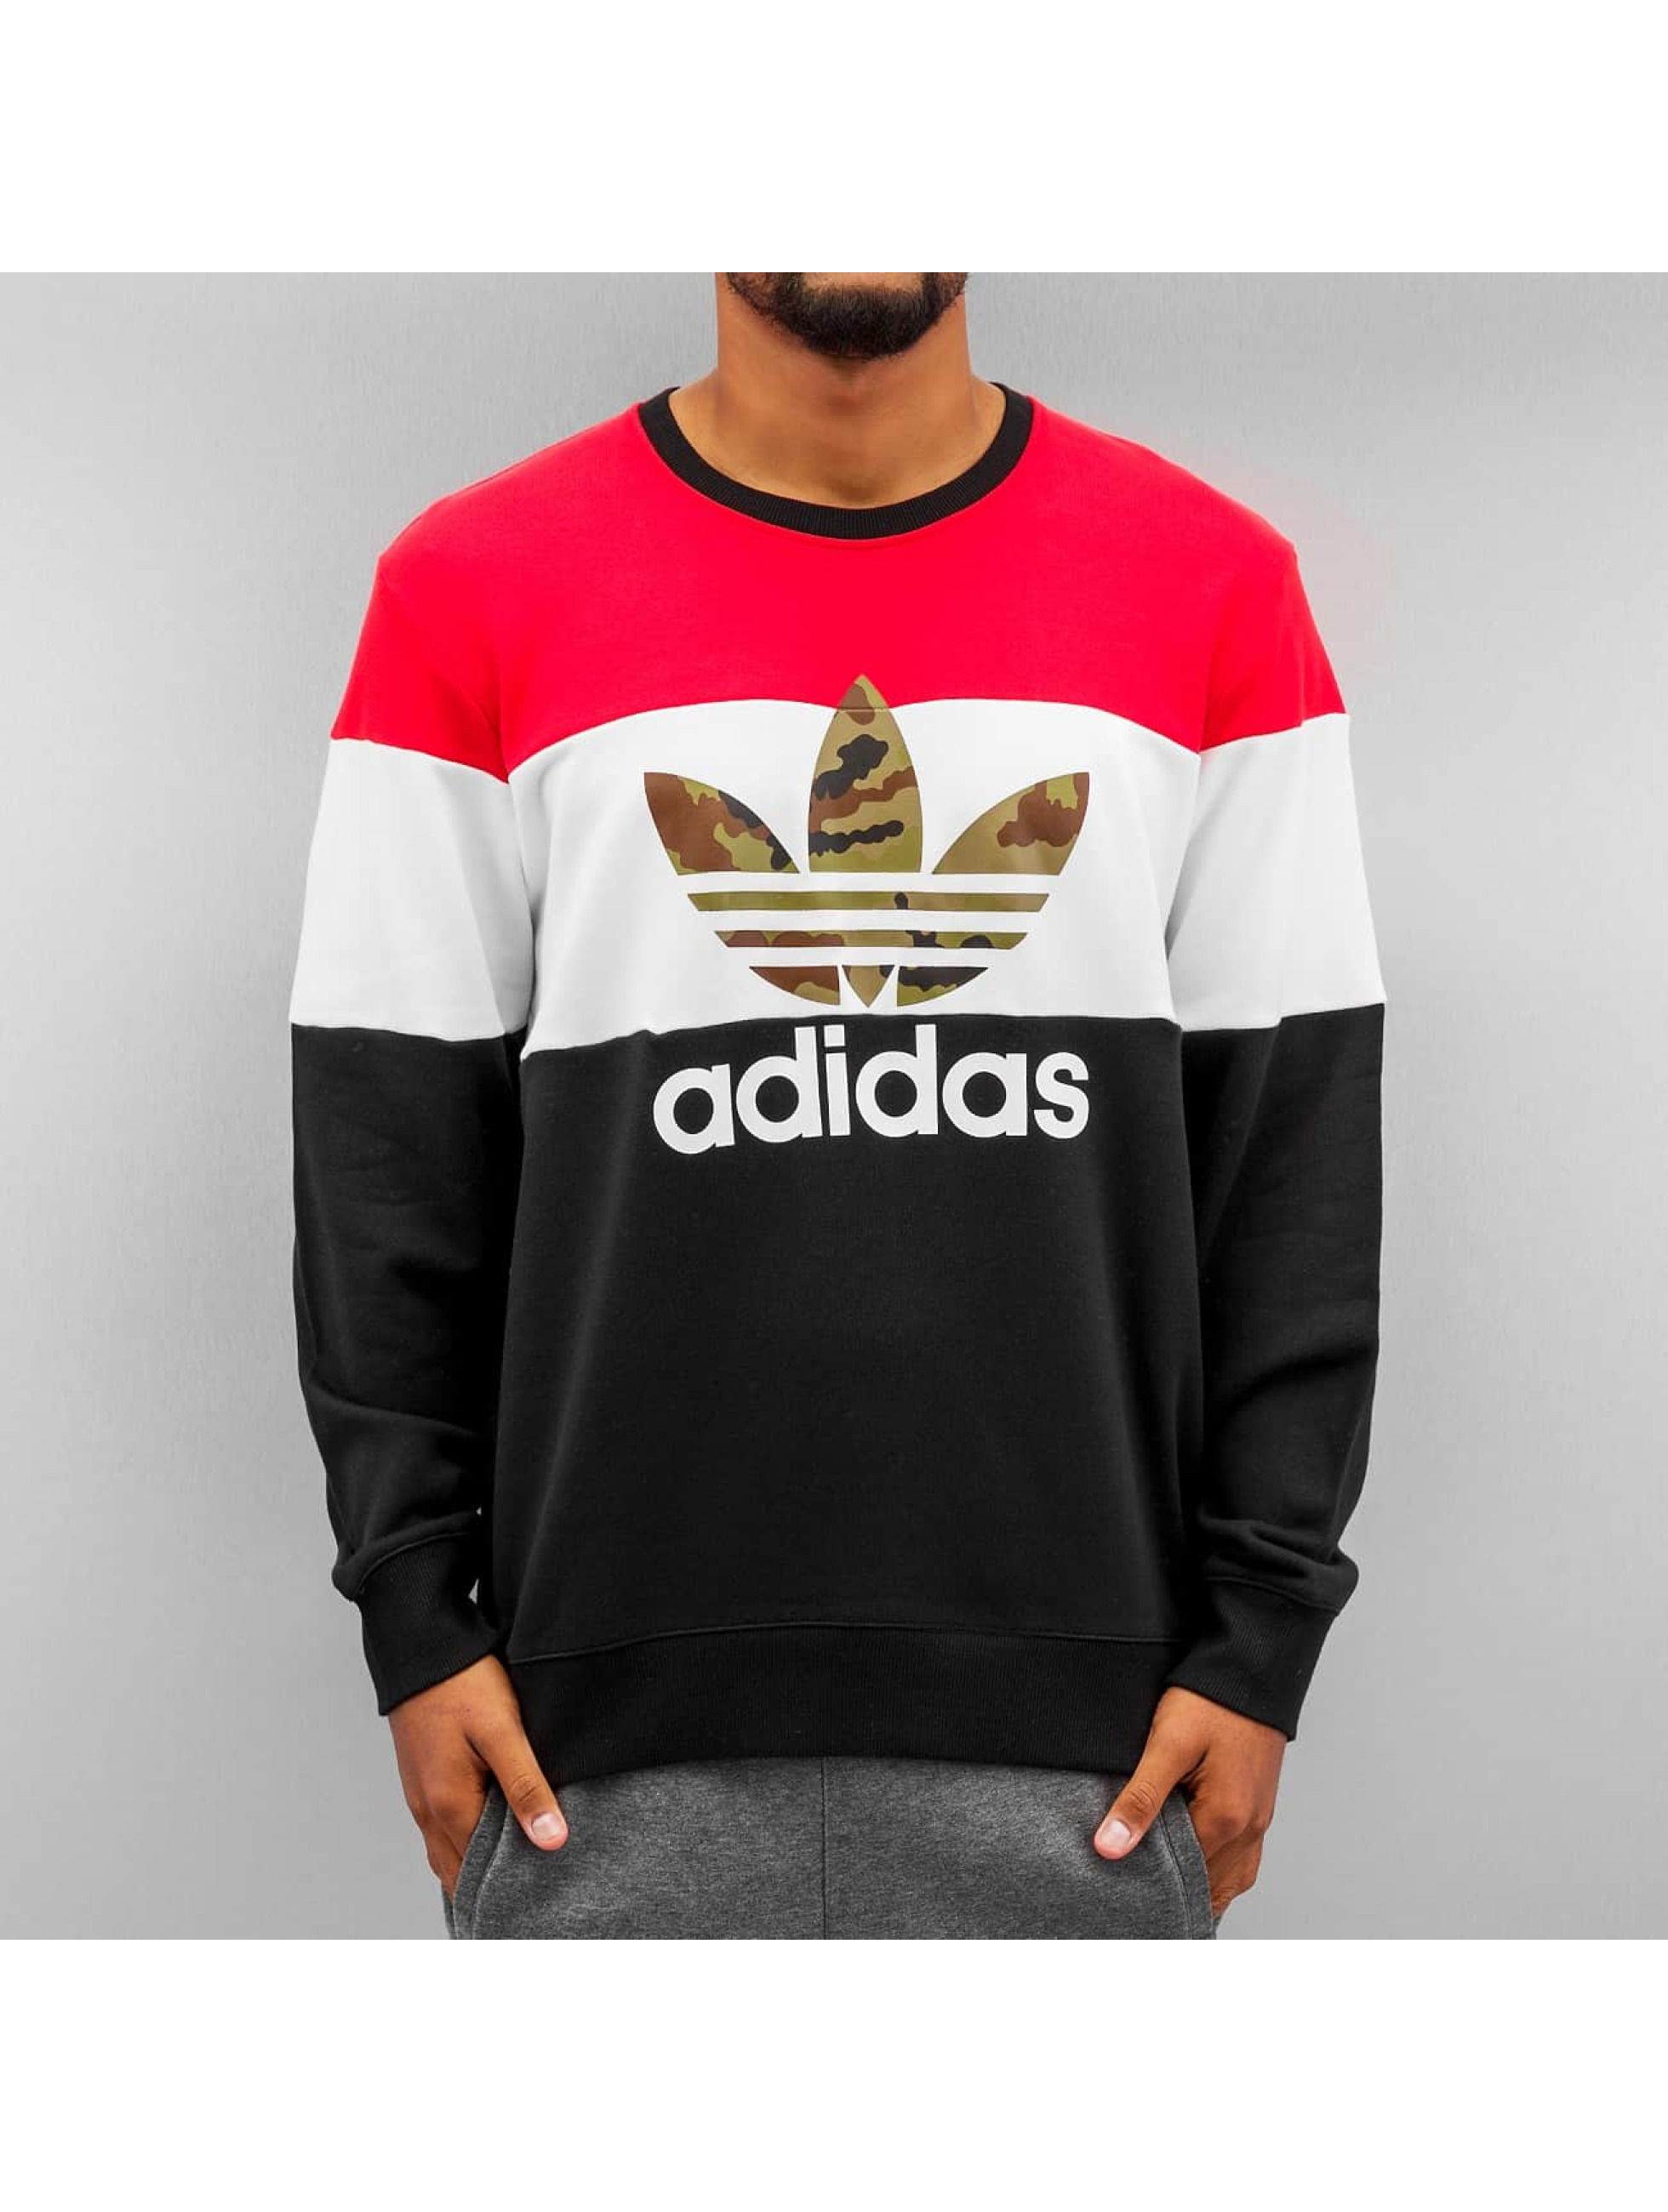 adidas herren pullover block it out ebay. Black Bedroom Furniture Sets. Home Design Ideas